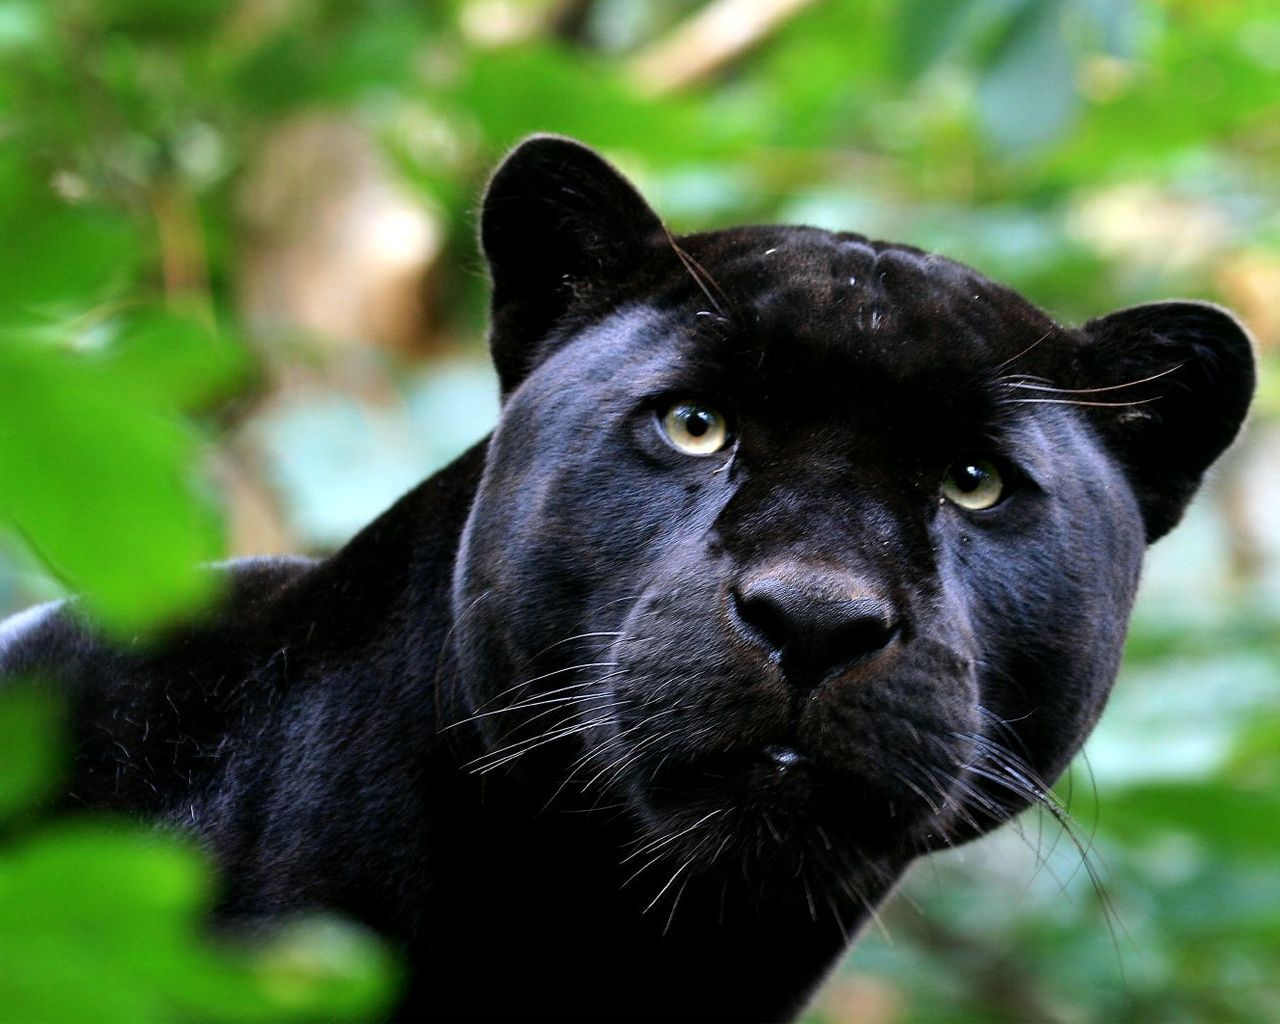 18++ Black panther animal pictures ideas in 2021